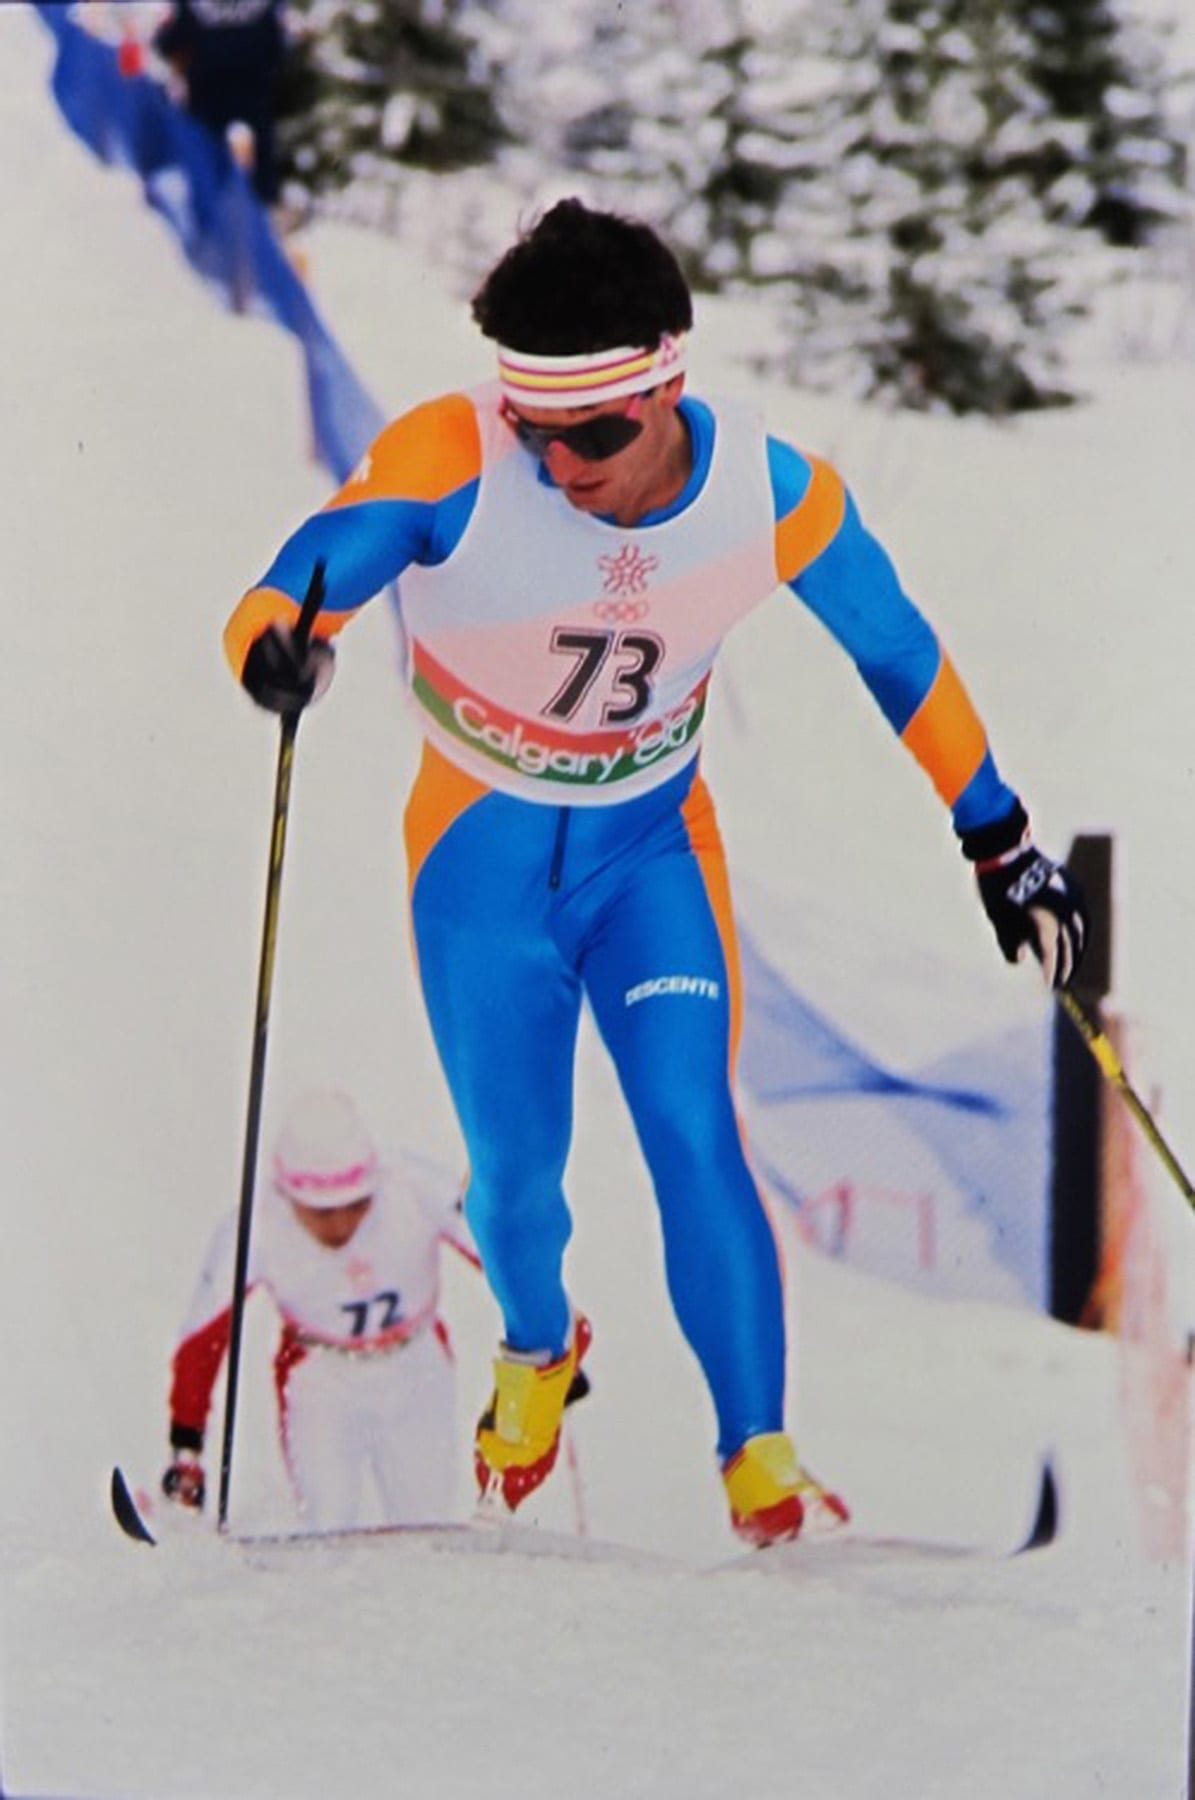 Former Olympic Athlete nordic skiier Dan Simoneau in Bend, Oregon